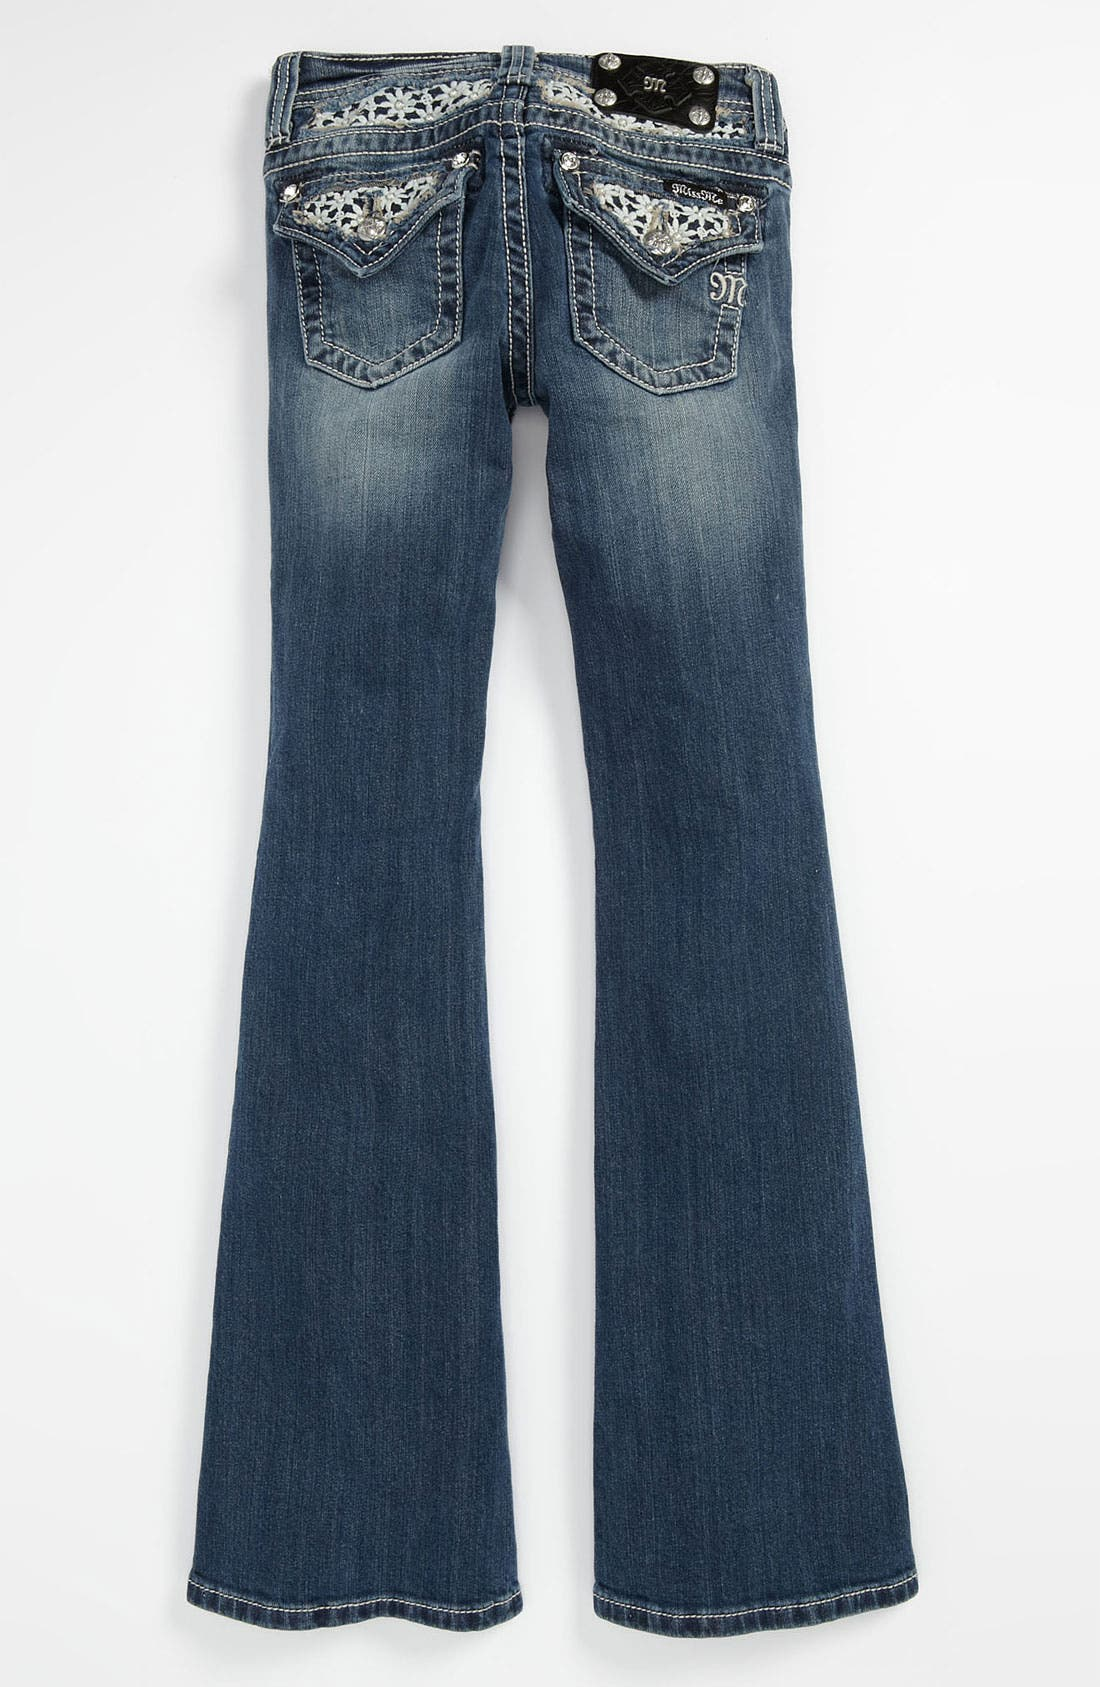 Alternate Image 1 Selected - Miss Me Bootcut Jeans (Big Girls)